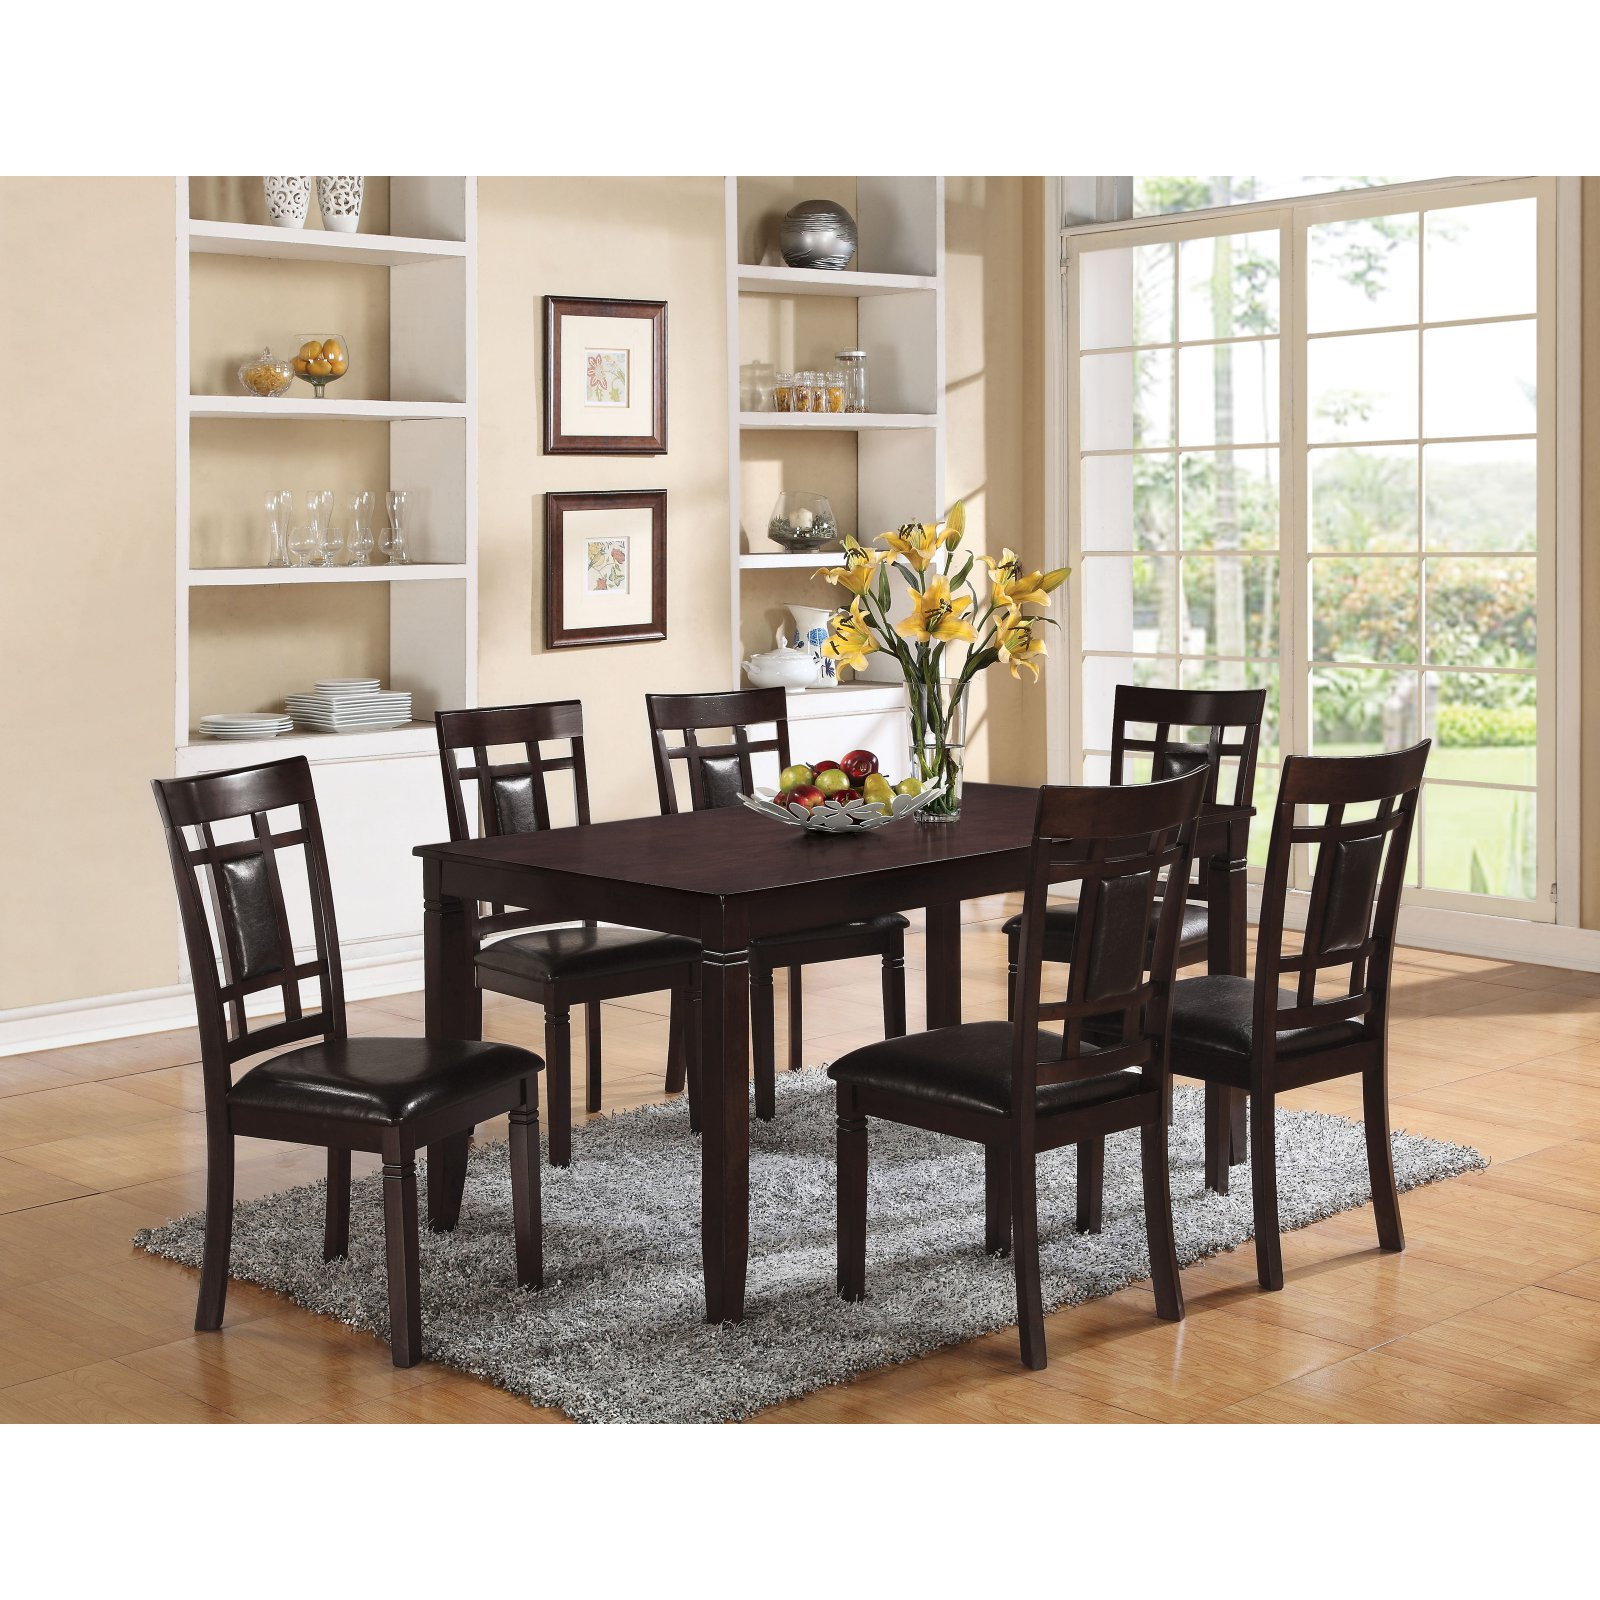 ACME Sonata 7-Piece Pack Dining Room Set, Espresso by Acme Furniture